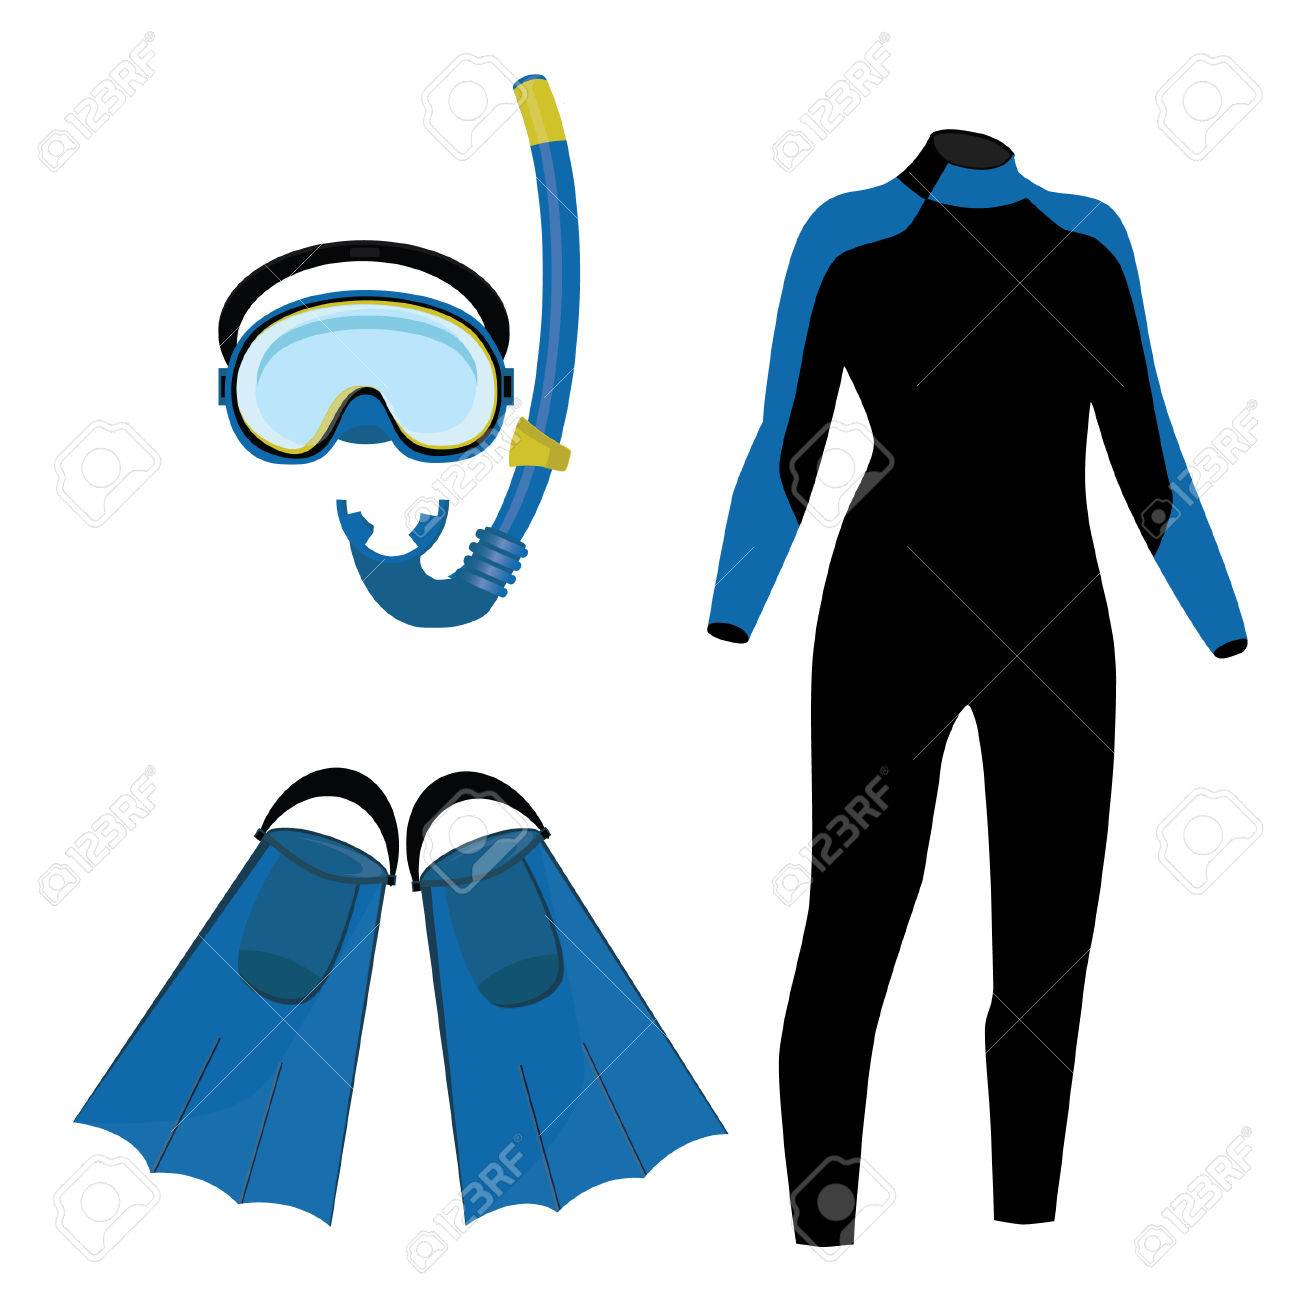 diving equipment vector icon set with blue diving mask and snorkel rh 123rf com Lunch Bag Clip Art Bus Clip Art